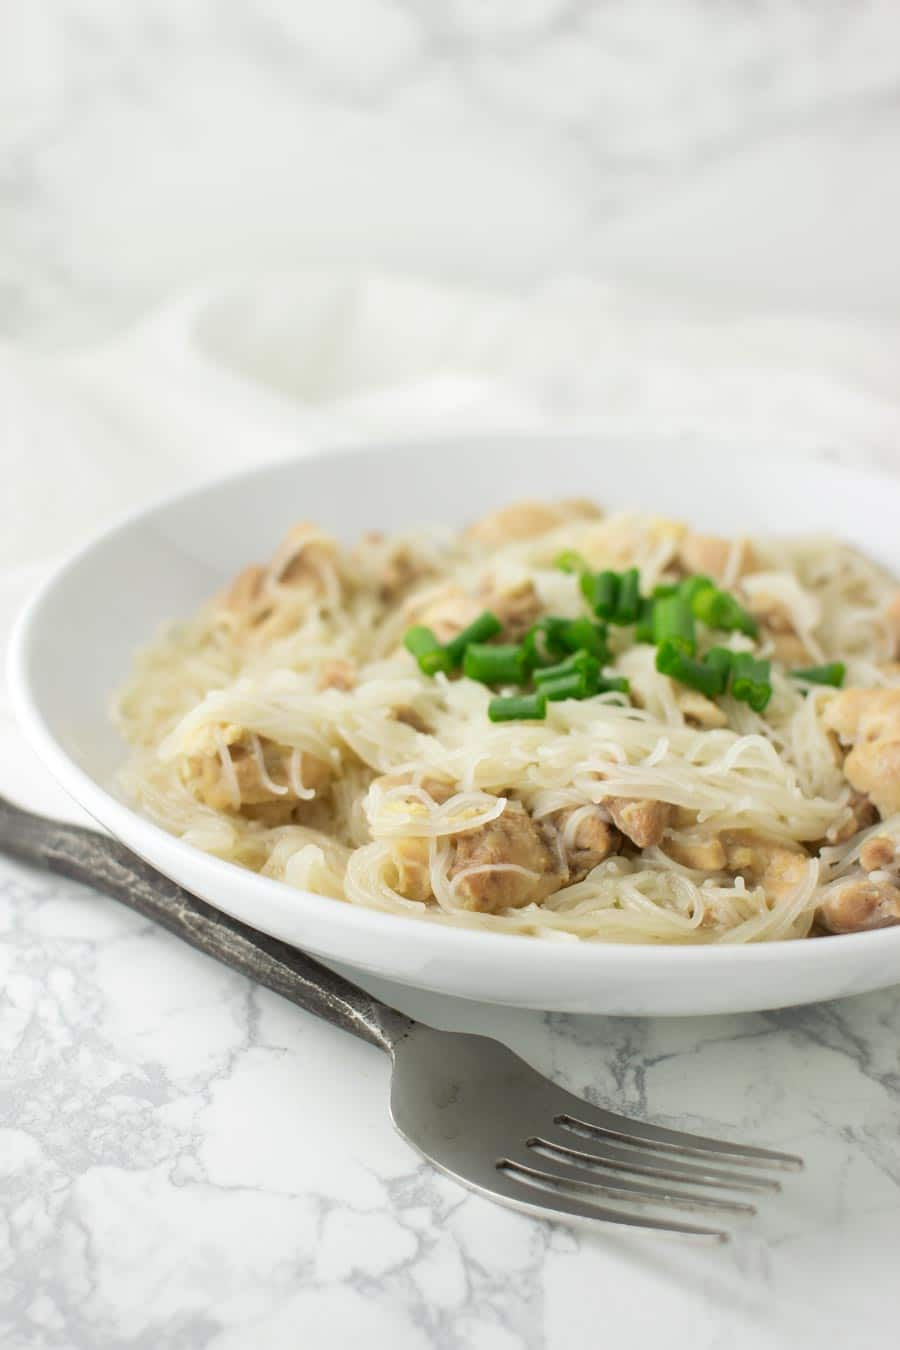 Chicken Long Rice recipe from acleanplate.com #paleo #glutenfree #dairyfree